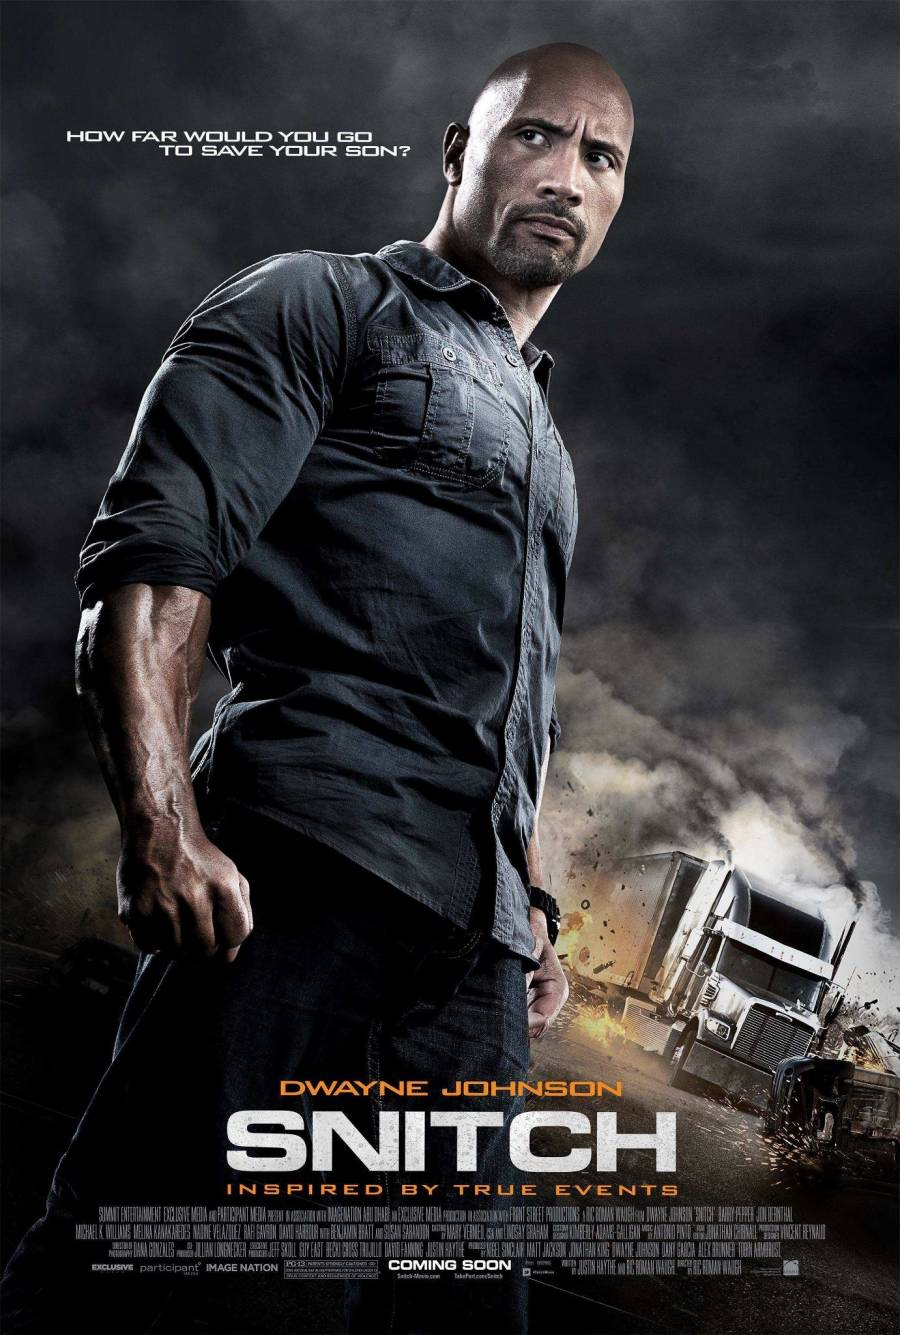 Download Snitch 2013 1080p BluRay 5.1CH x264 1.4GB